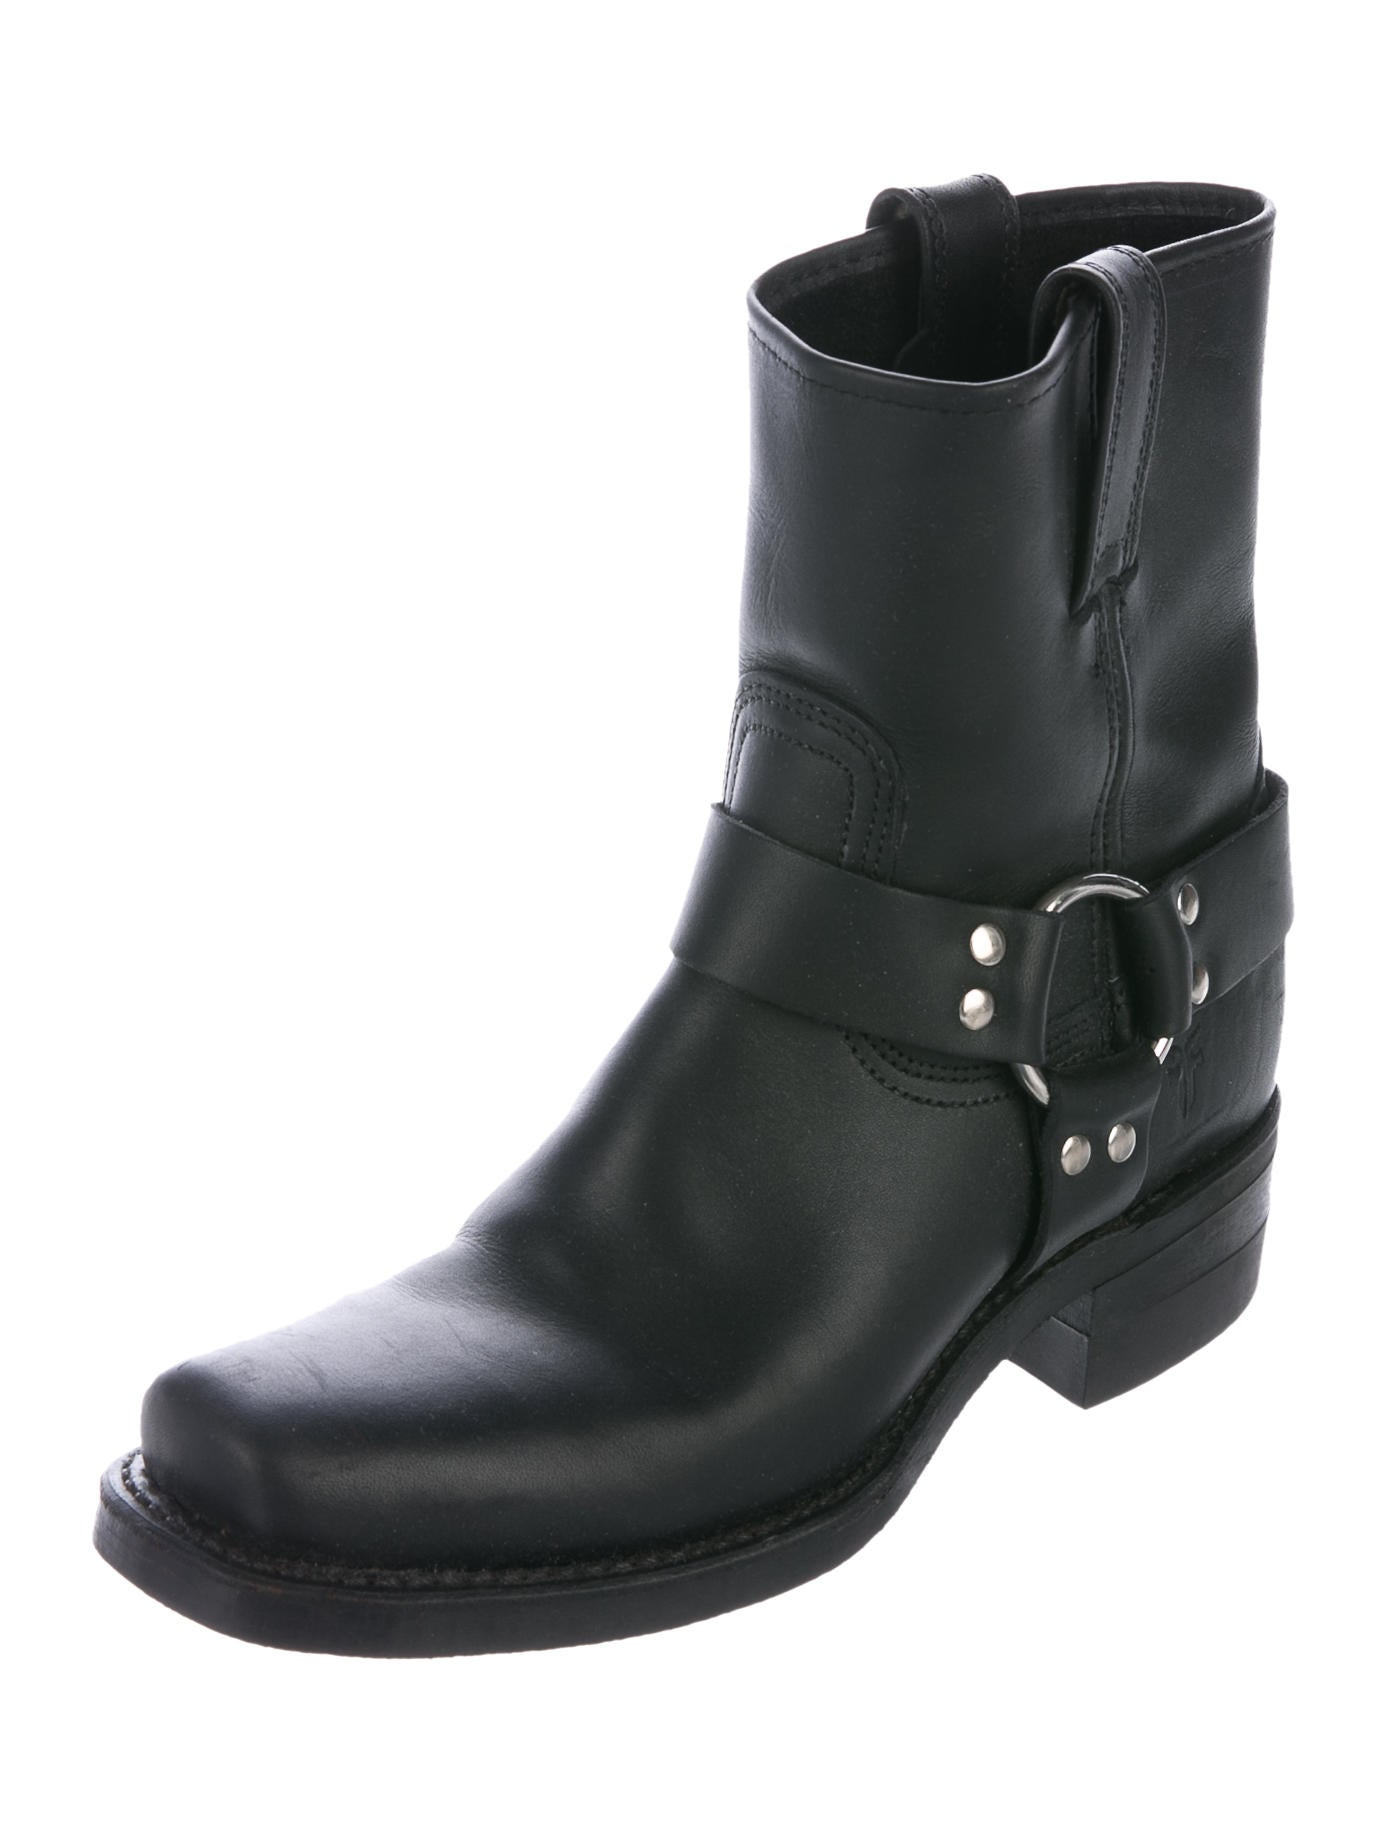 frye harness ankle boots shoes wf821477 the realreal